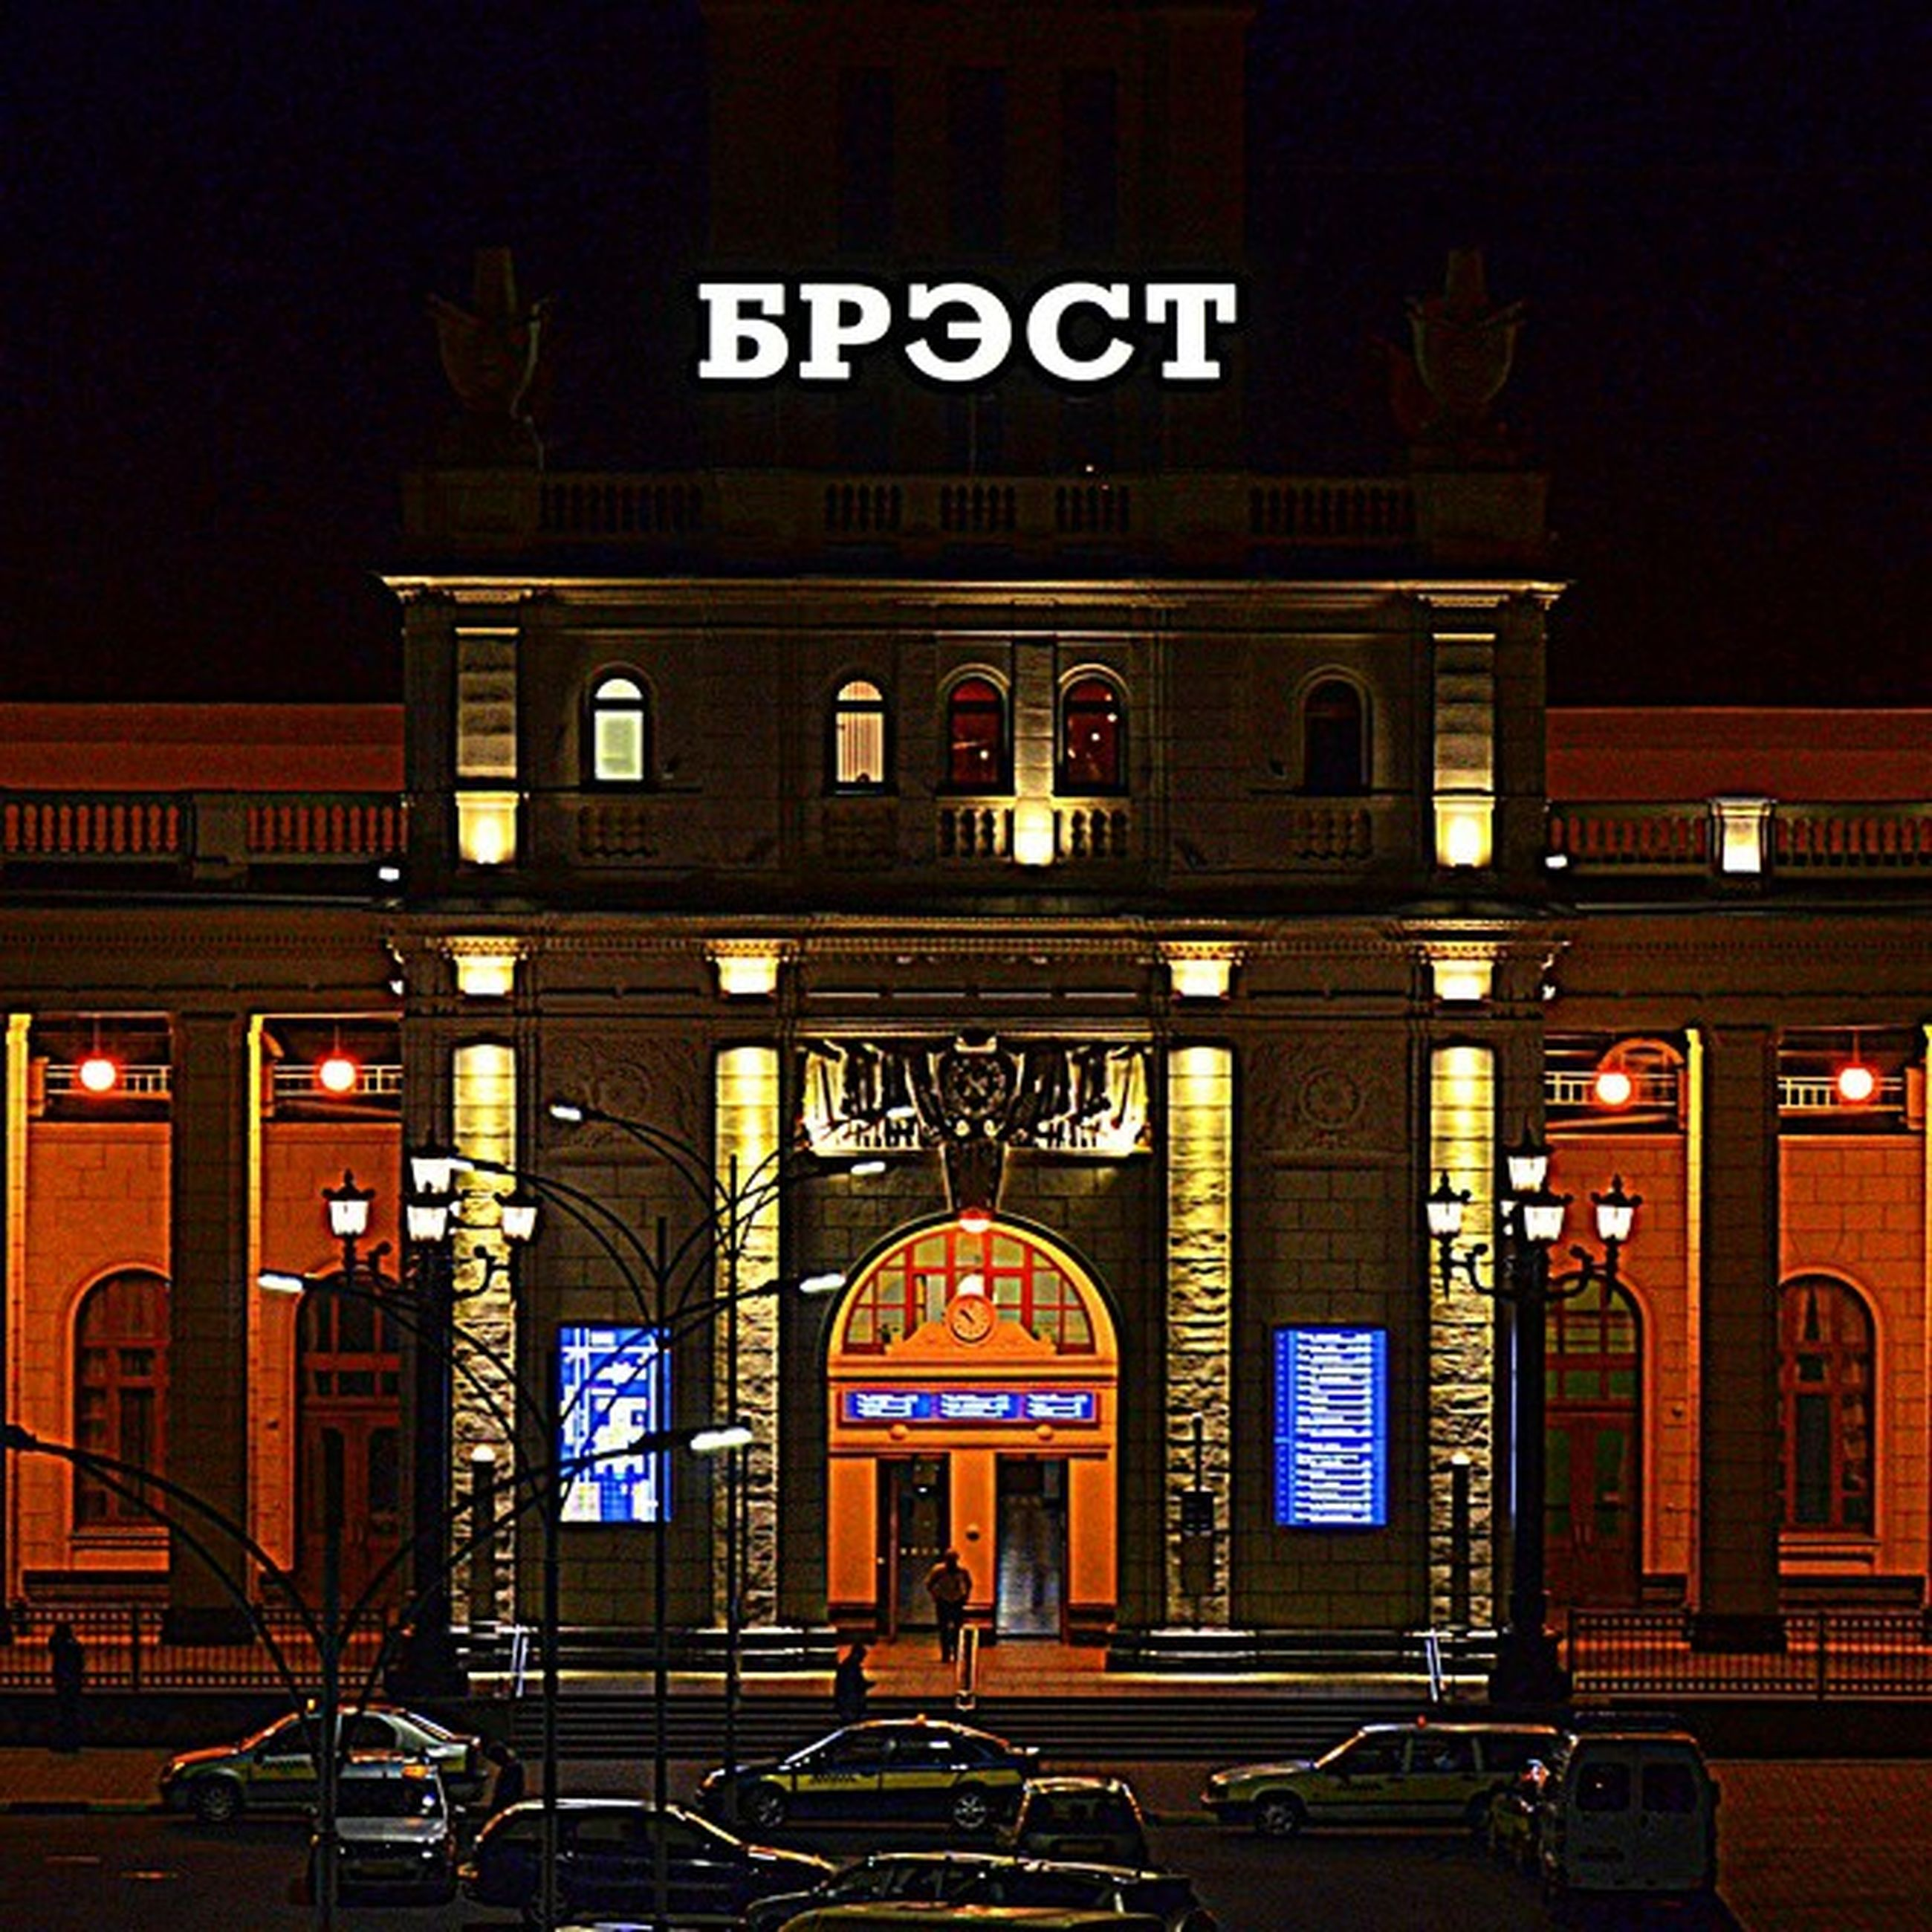 text, architecture, western script, built structure, illuminated, building exterior, communication, night, non-western script, information sign, railroad station, entrance, capital letter, information, transportation, sign, city, travel destinations, no people, incidental people